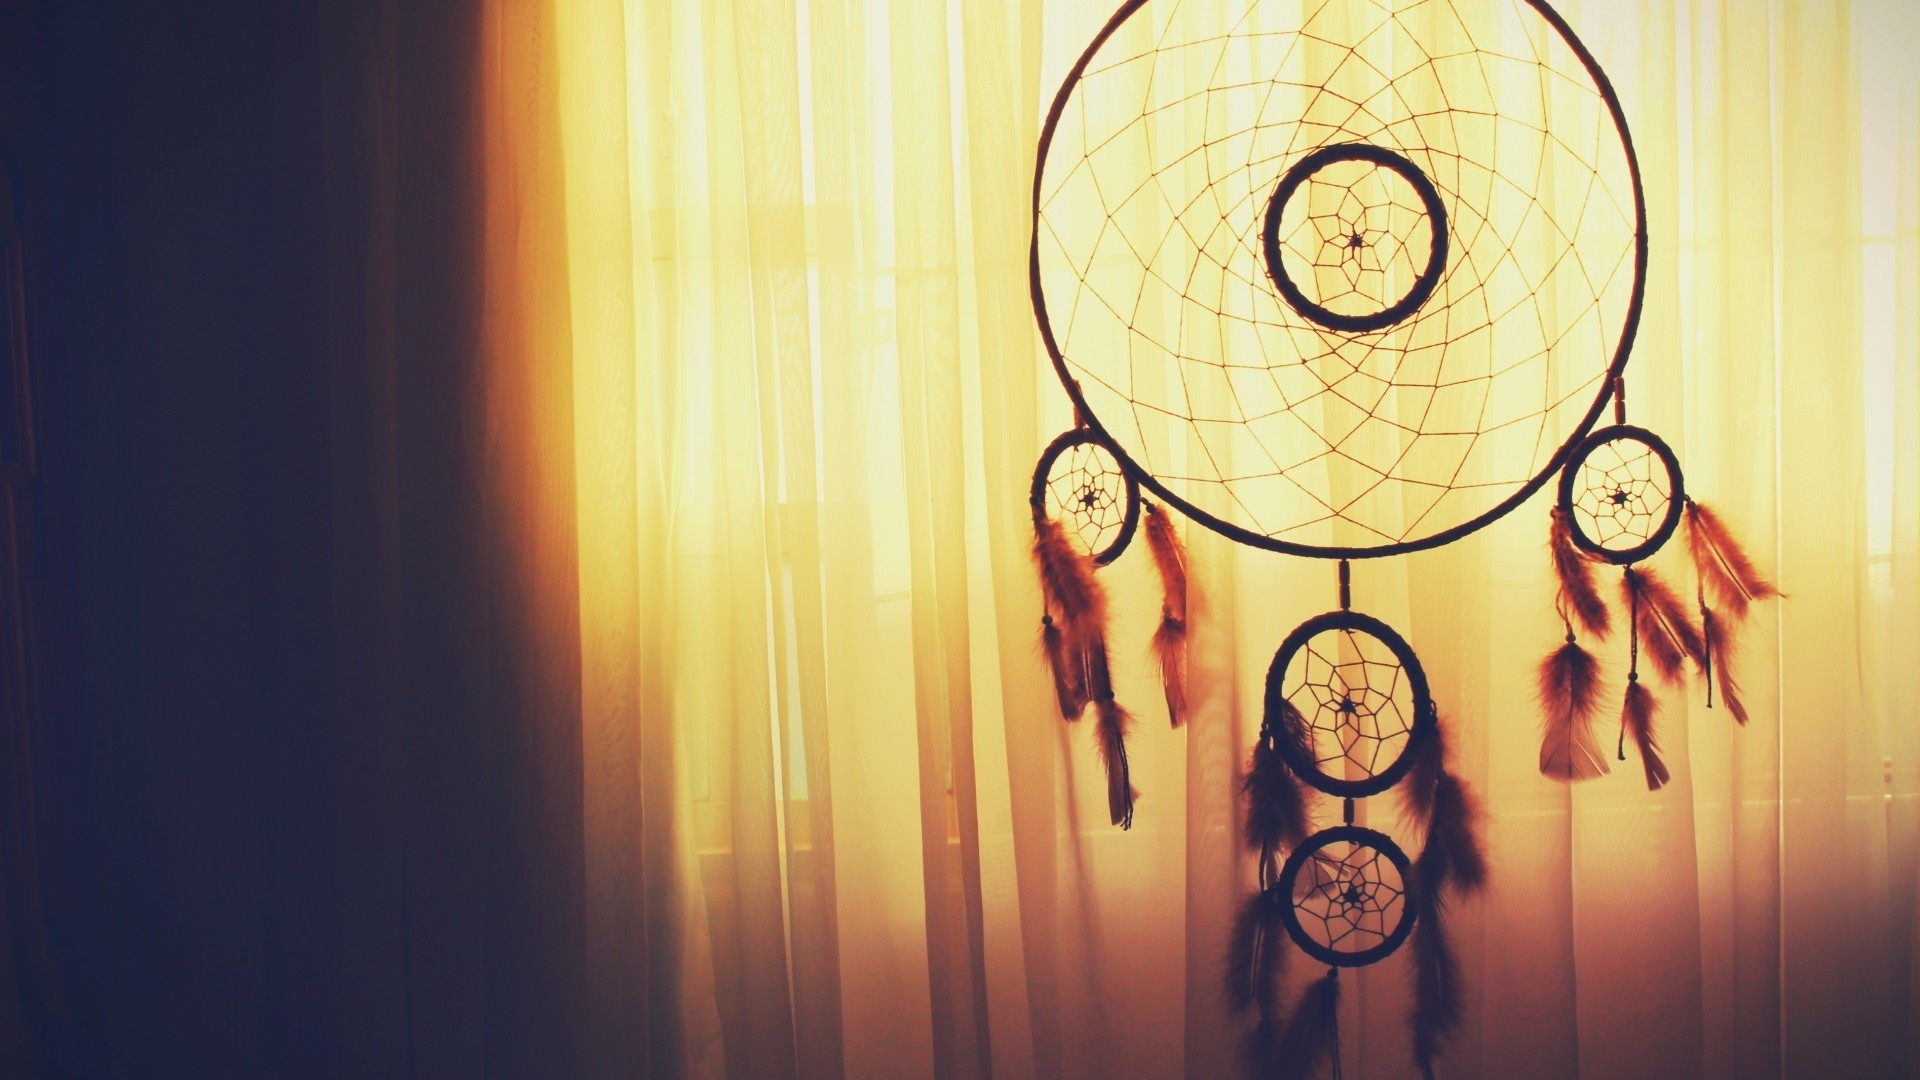 Dreamcatcher wallpaper photo hd